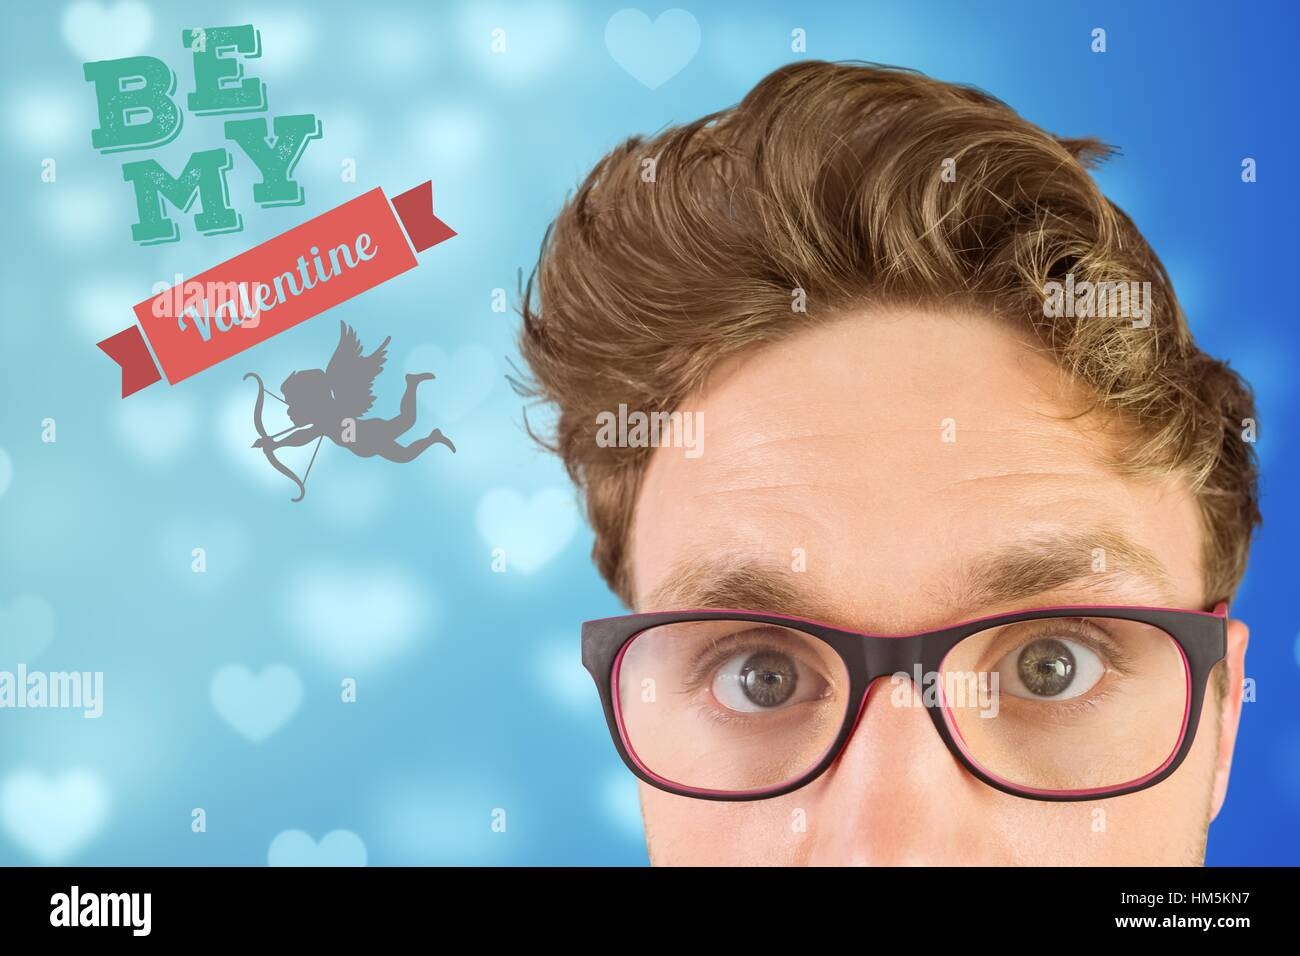 Digitally generated image of nerd man and valentine message - Stock Image